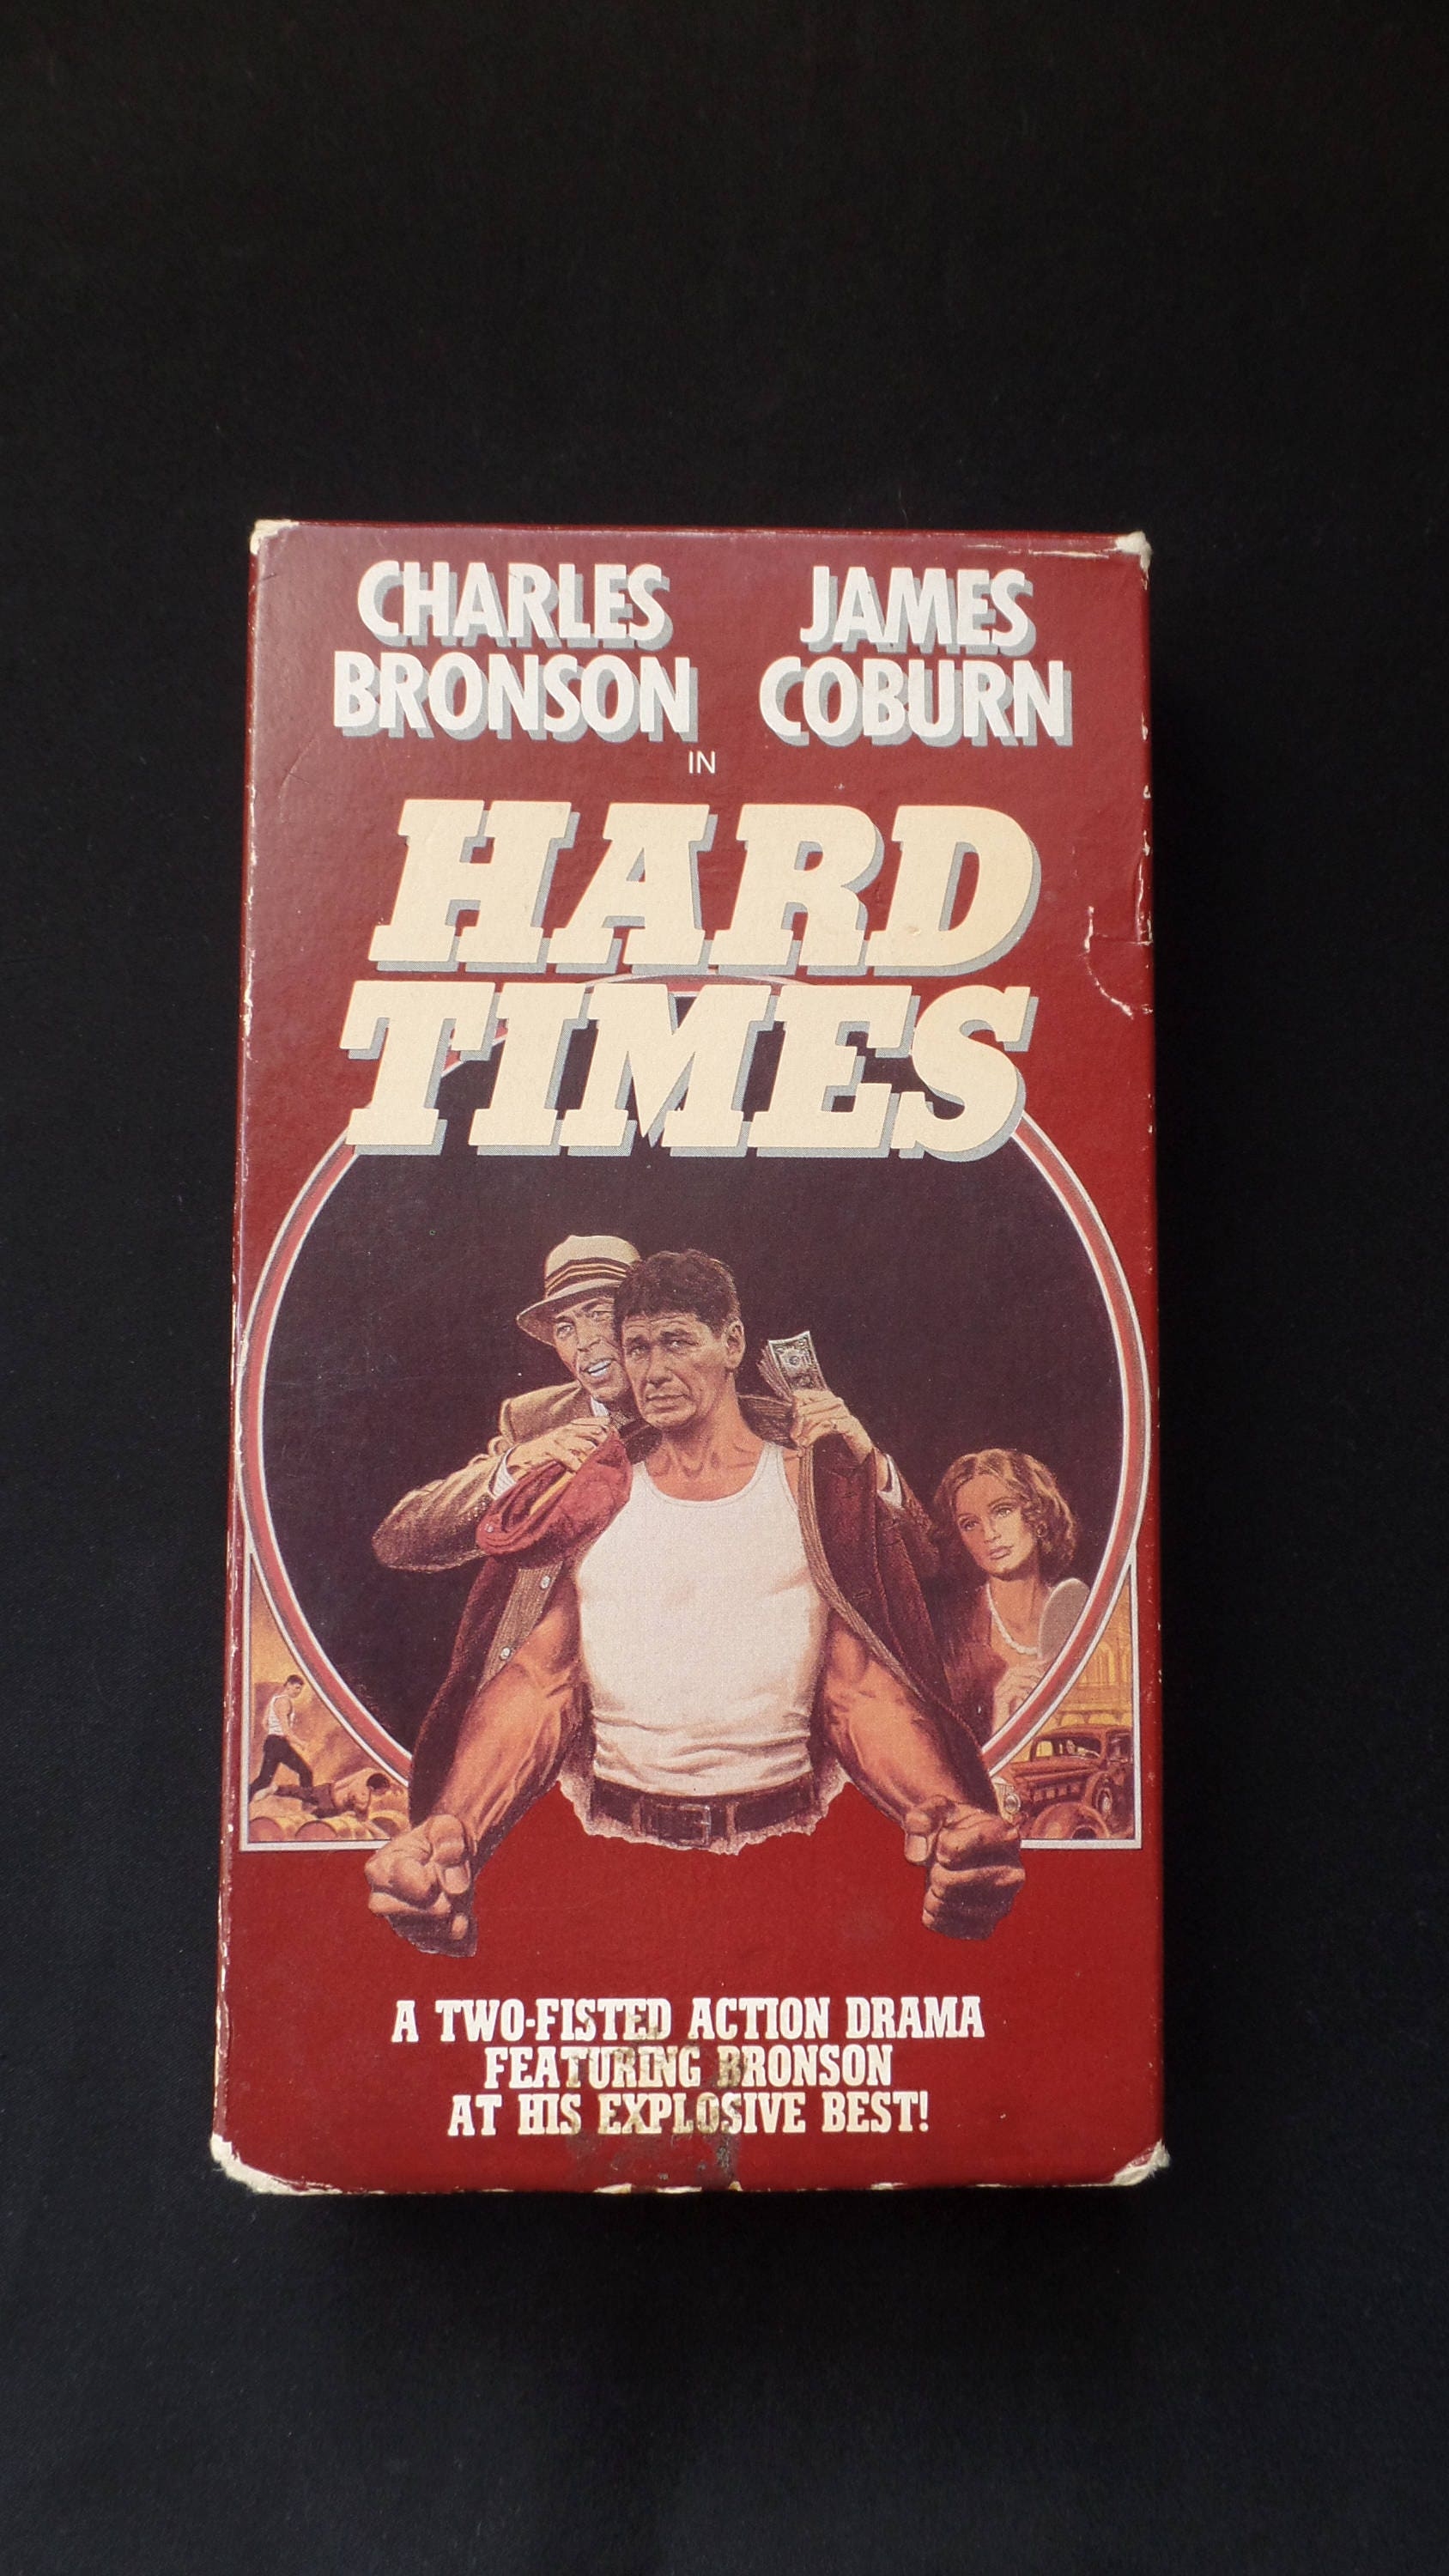 James Coburn And Charles Bronson Hard Times Still Print Check Other Sizes